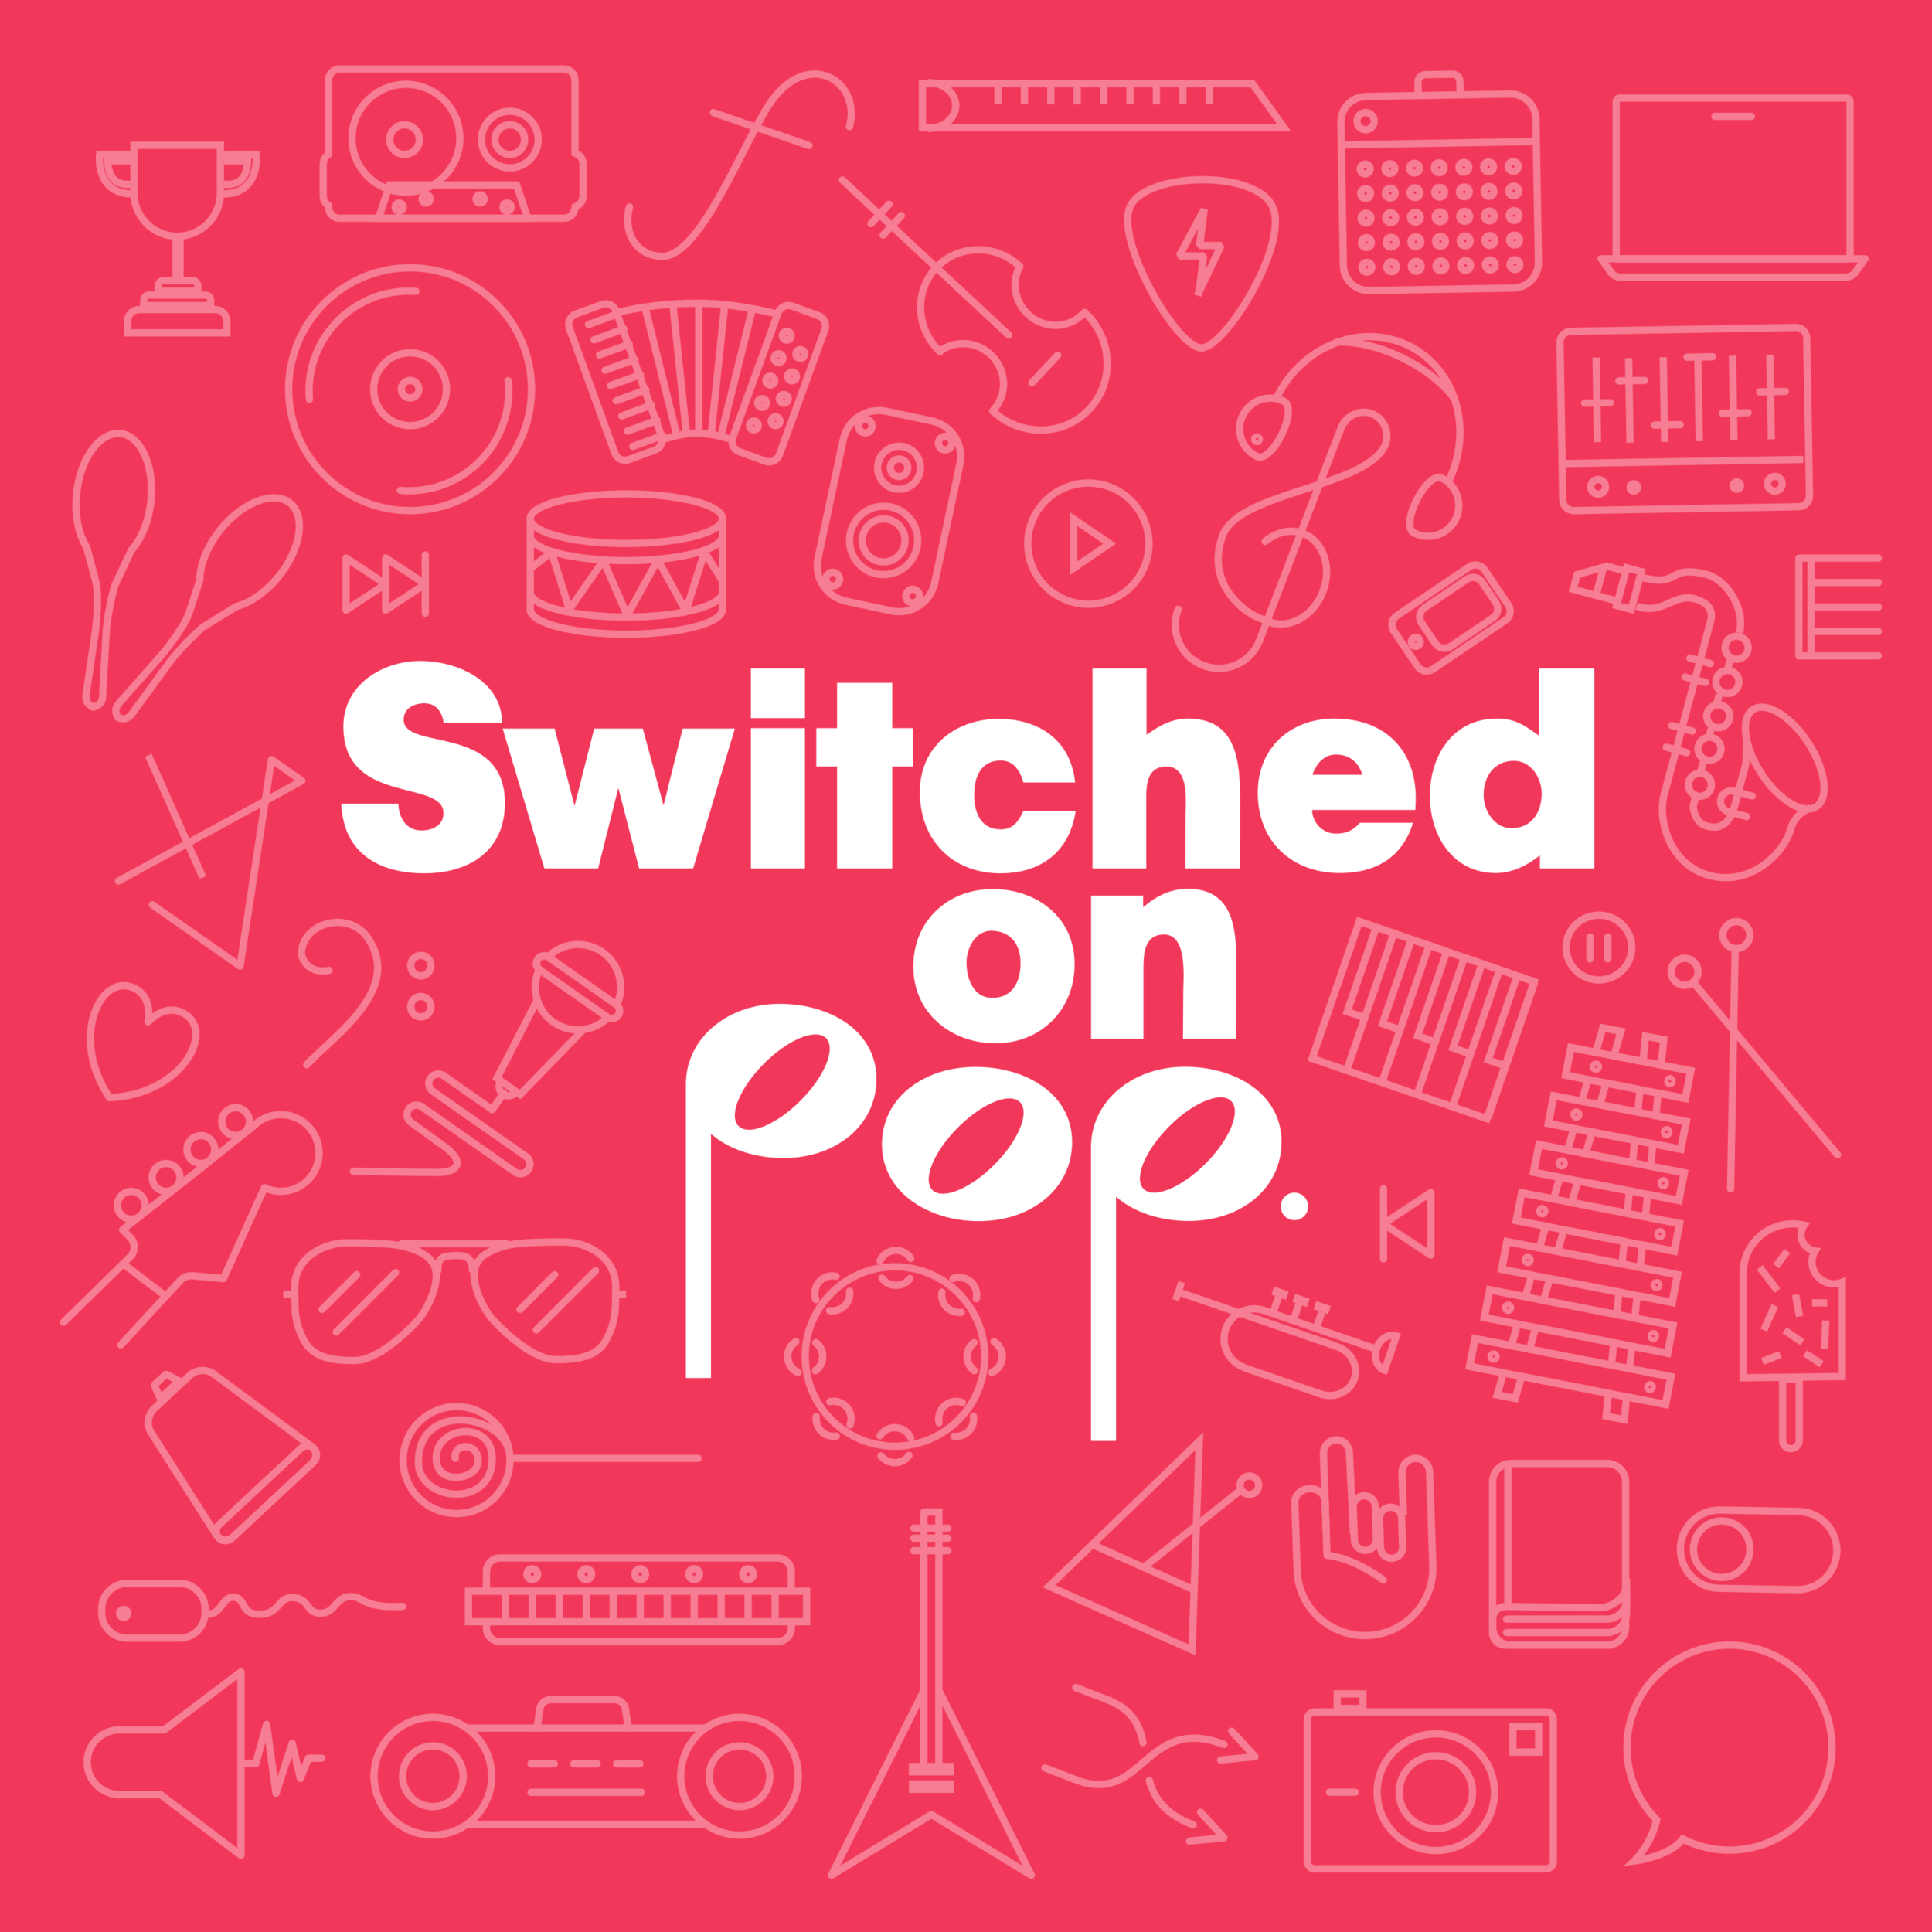 Switched on Pop   Best for : Classically trained musicians tired of explaining to people that all pop music is a rip-off   What to expect : Musicologist Nate Sloan and songwriter Charlie Harding break down pop hits and show their roots in classical music in fun, accessible segments. Find it on:  iTunes ,  Stitcher ,  Spotify